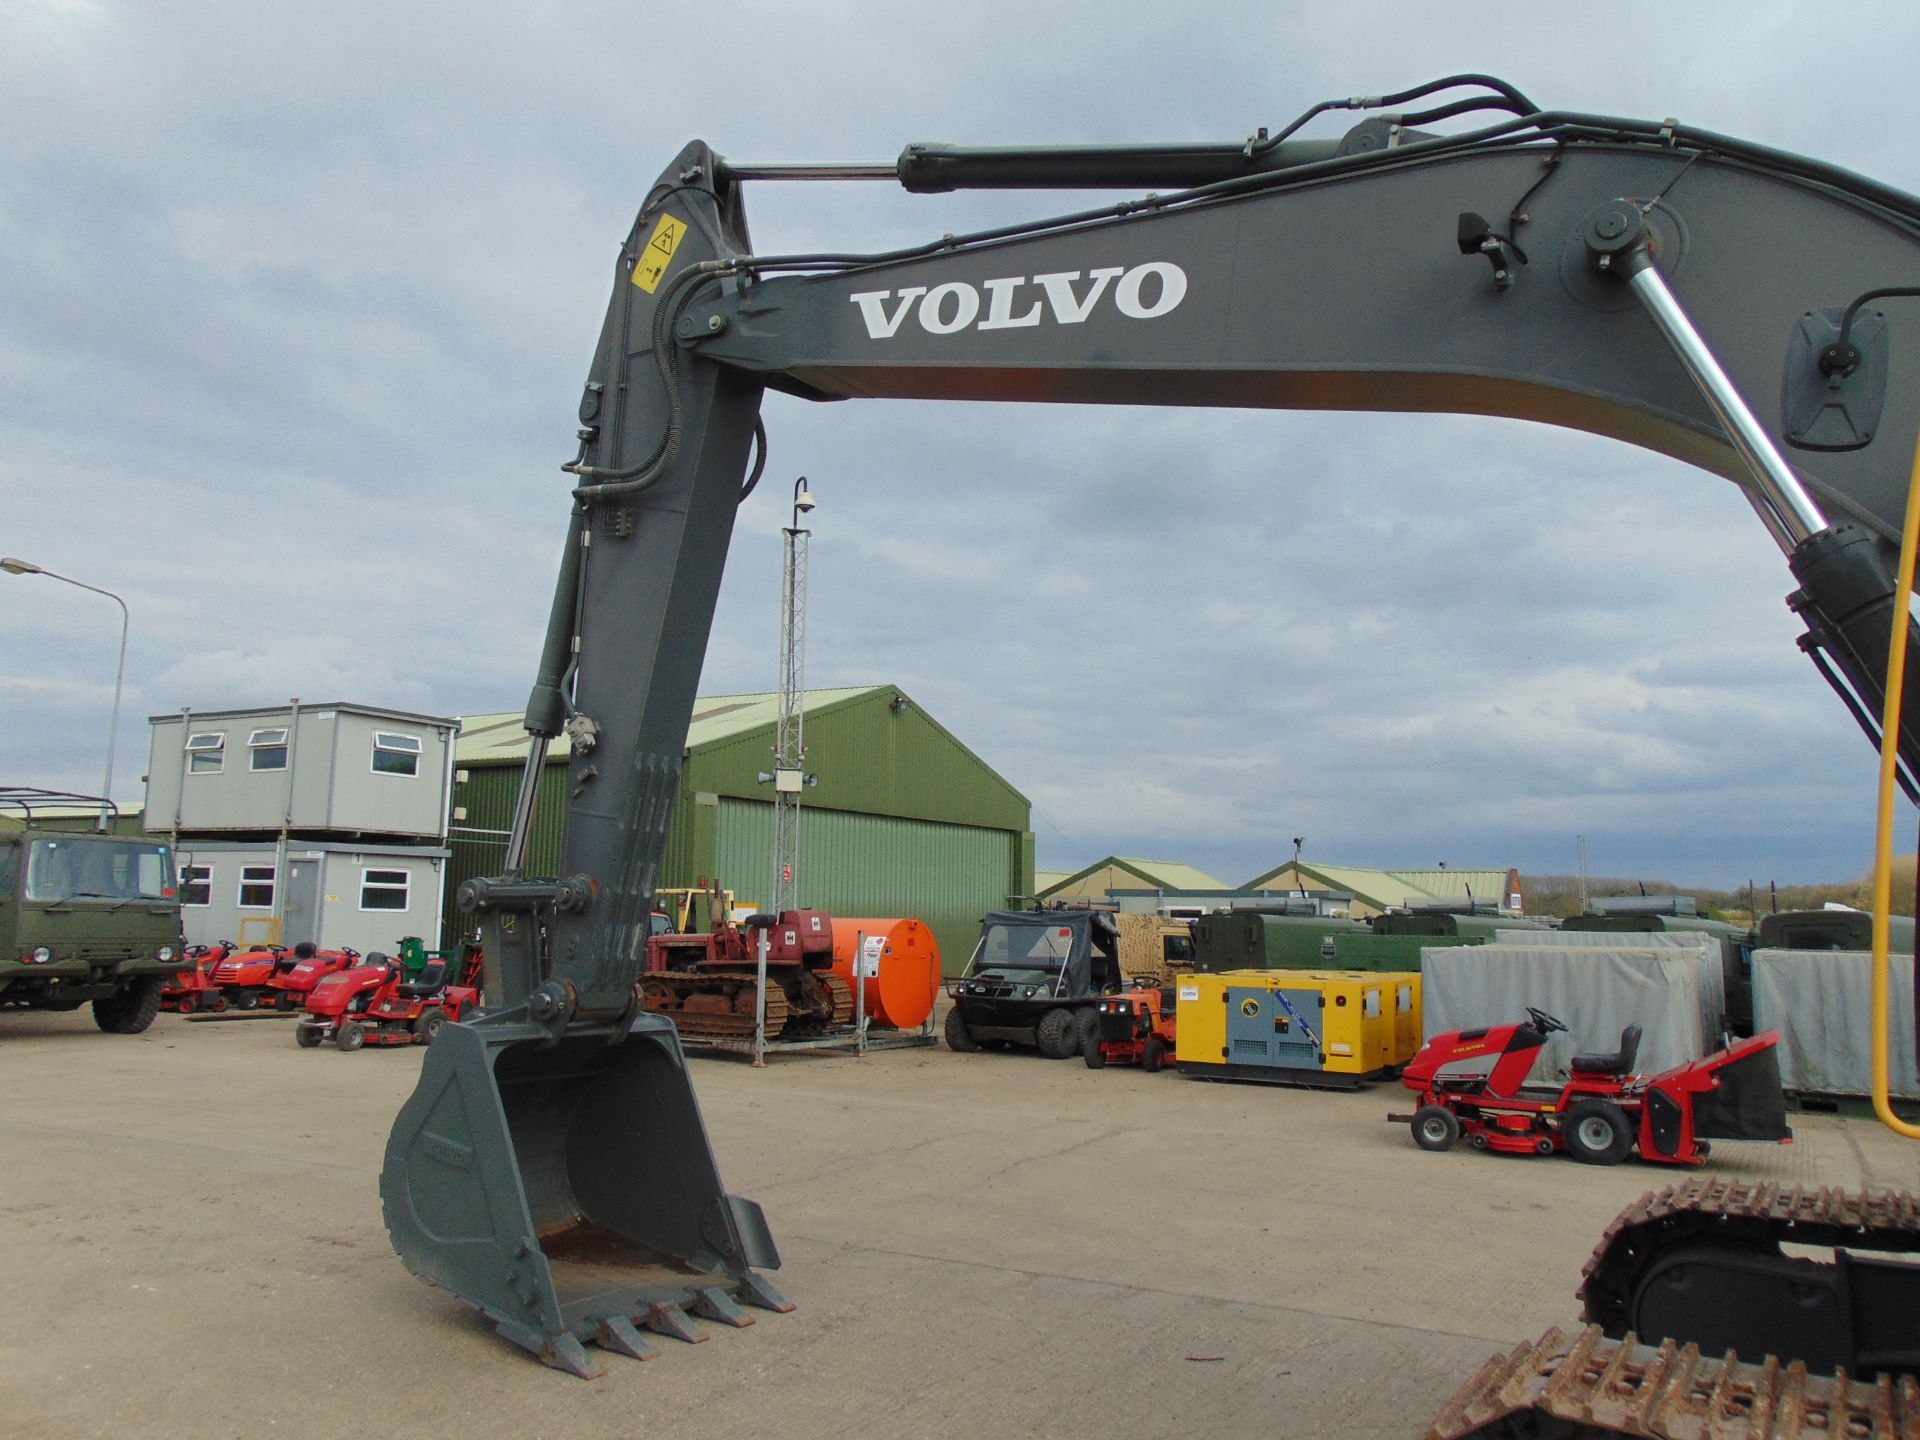 Lot 34 - NEW & UNUSED Volvo EC210B LC Prime 22t Excavator